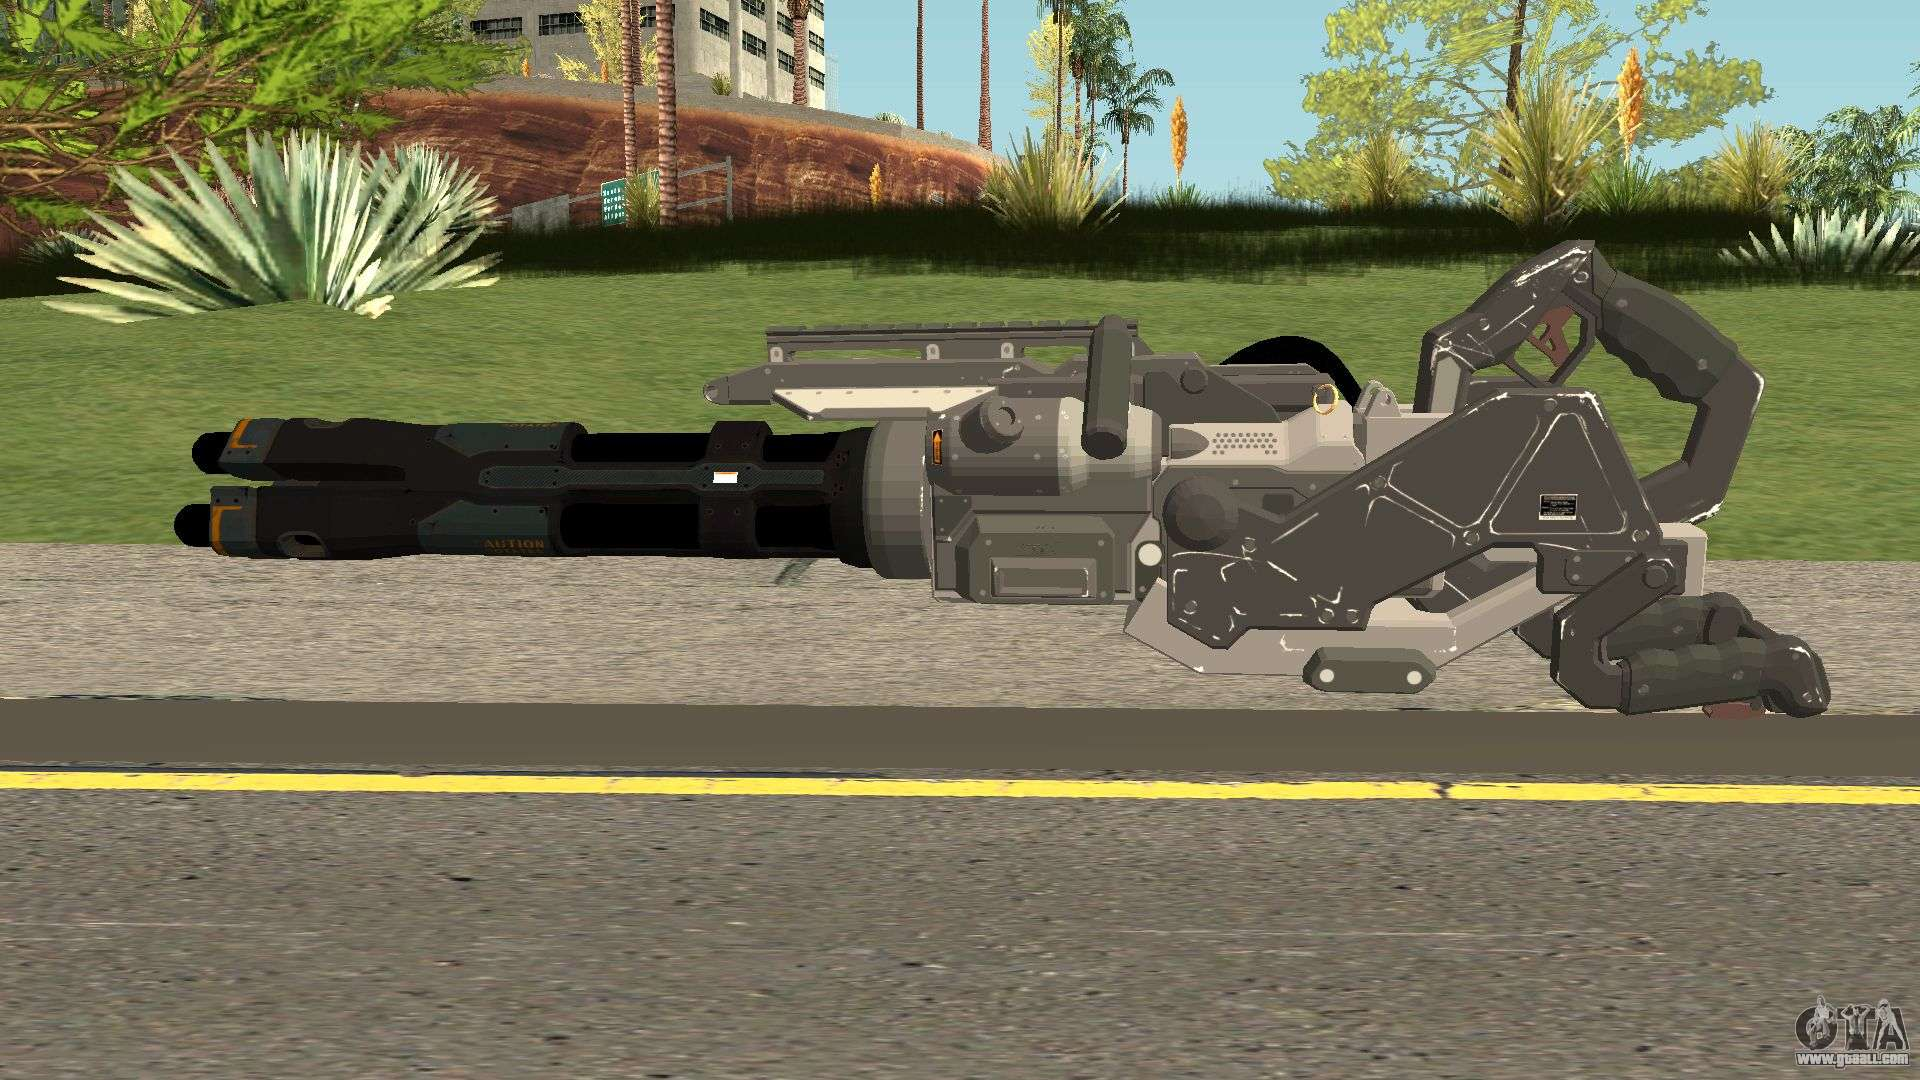 Call Of Duty Black Ops 3 Death Machine V1 For Gta San Andreas